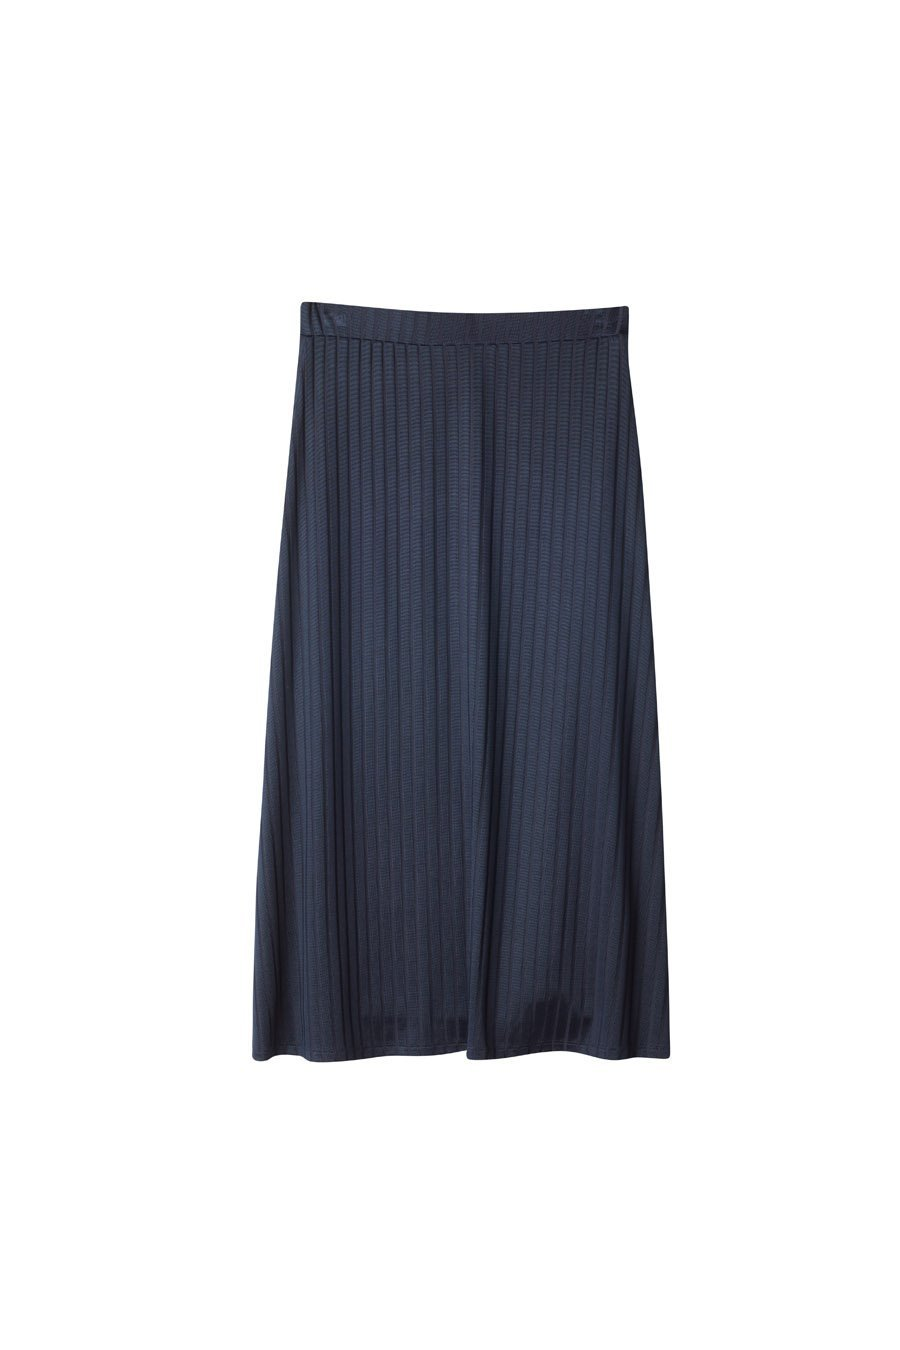 PHILLY SKIRT - NAVY Skirt Stylein